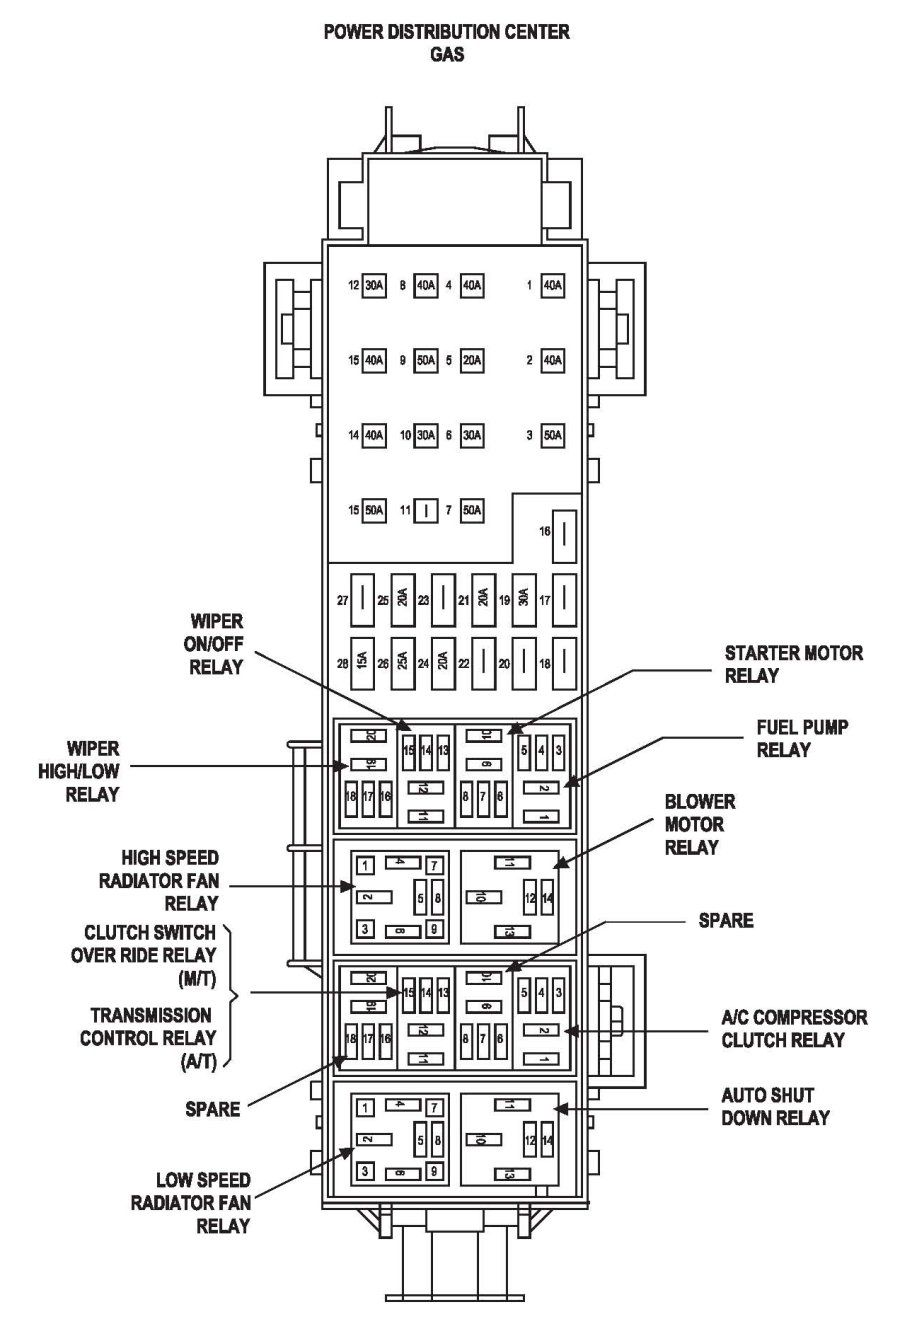 jeep liberty fuse box diagram image details jeep. Black Bedroom Furniture Sets. Home Design Ideas